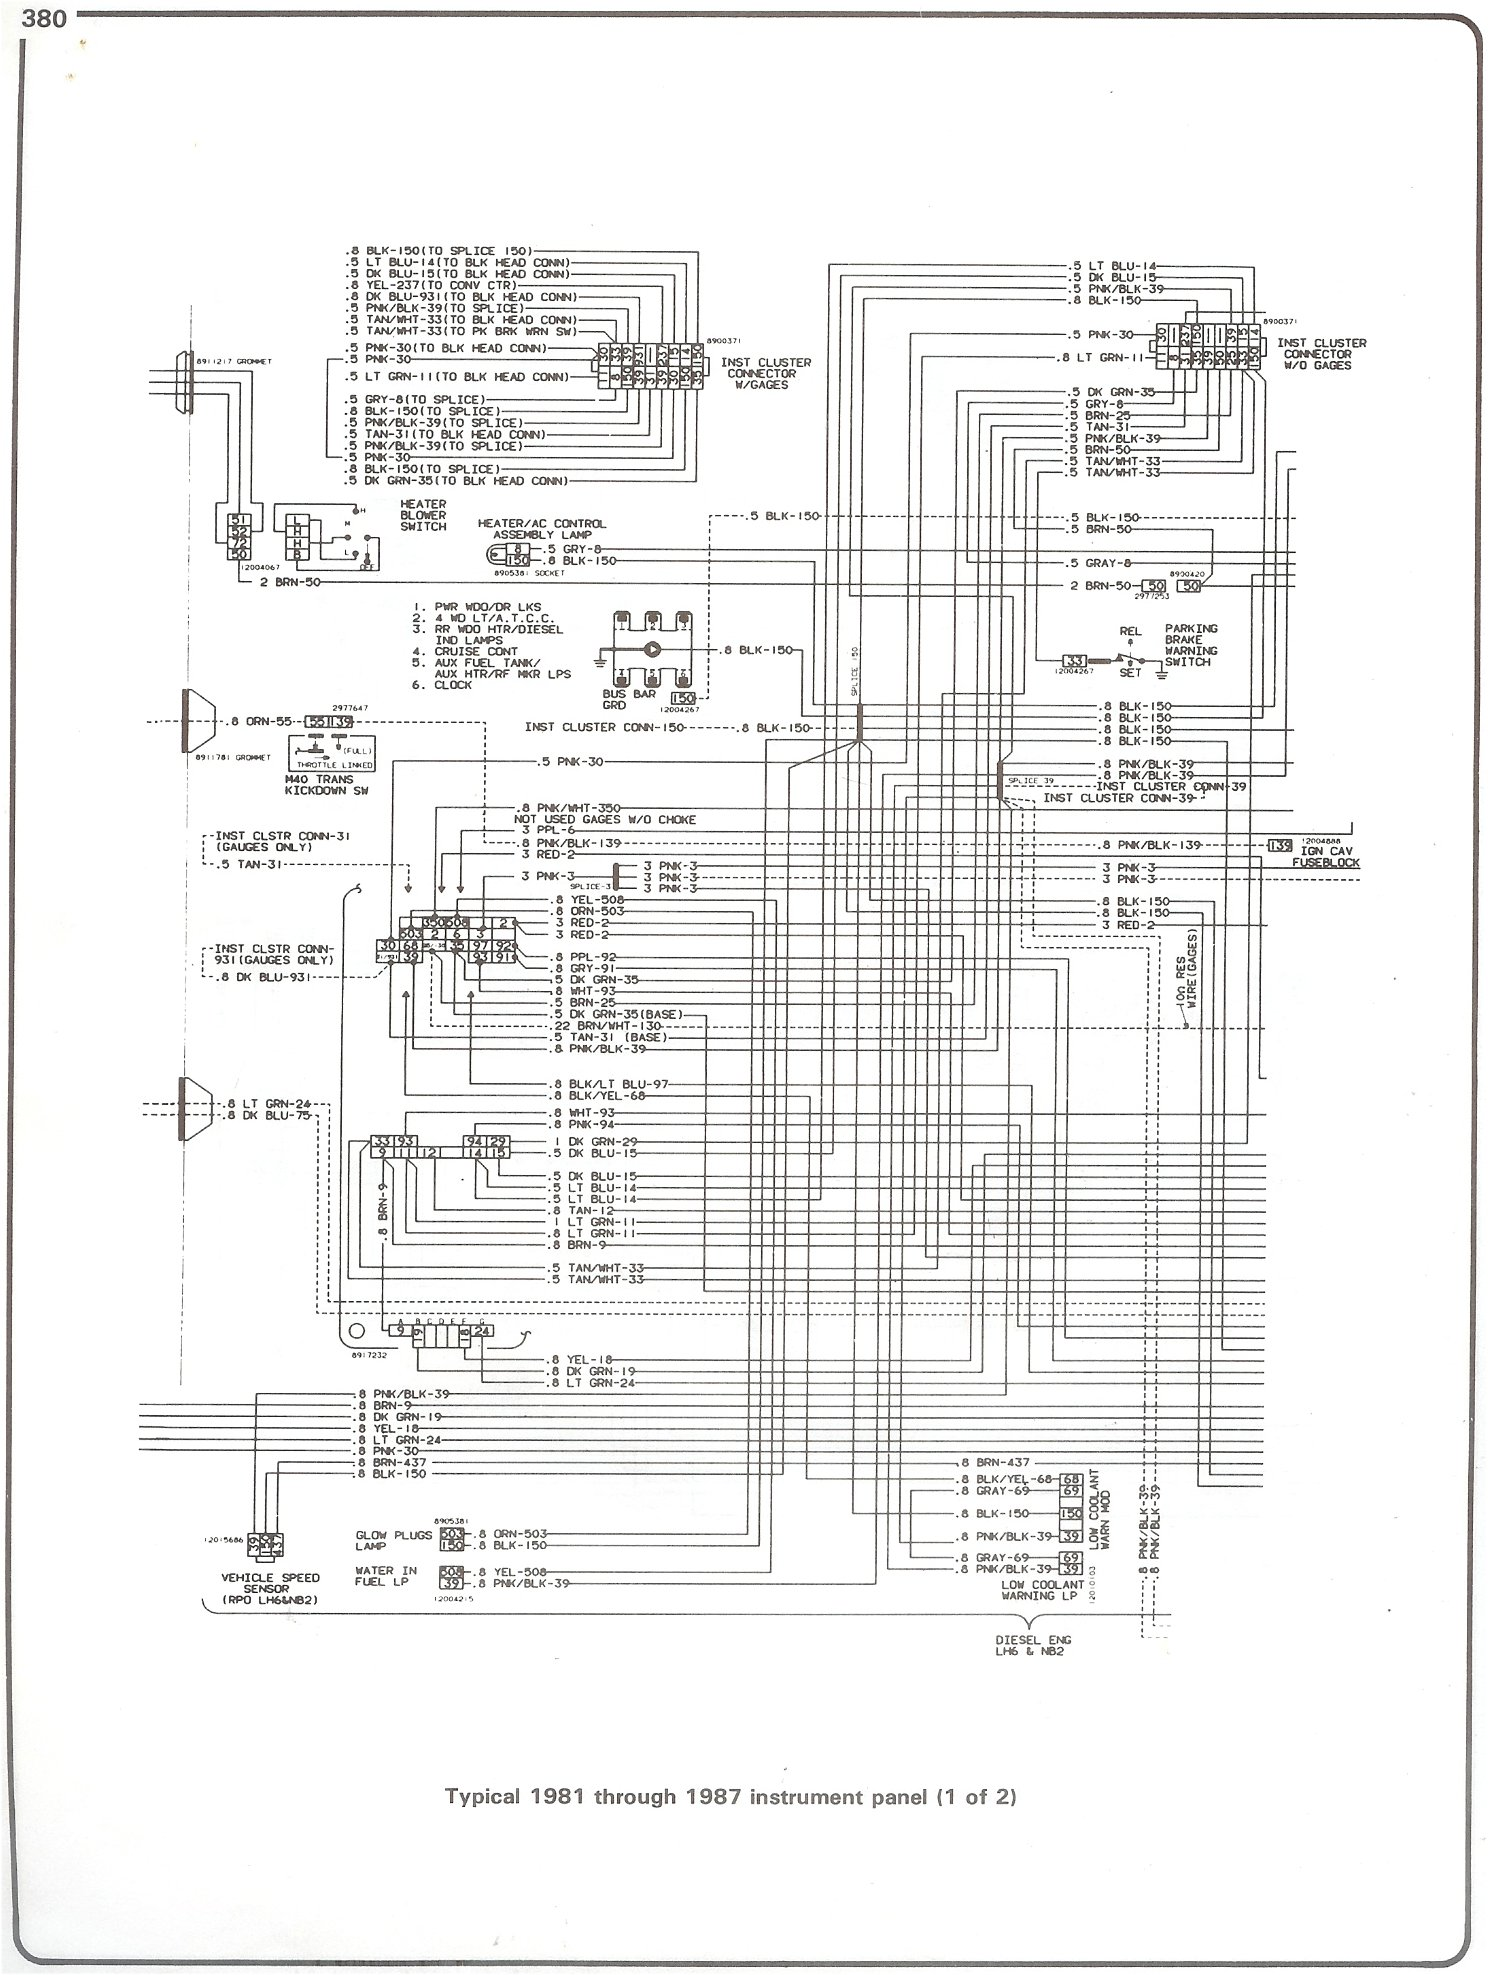 Chevy wiring diagram wiring diagrams schematics complete 73 87 wiring diagrams 81 87 instrument panel page 1 chevy wiring diagram asfbconference2016 Gallery